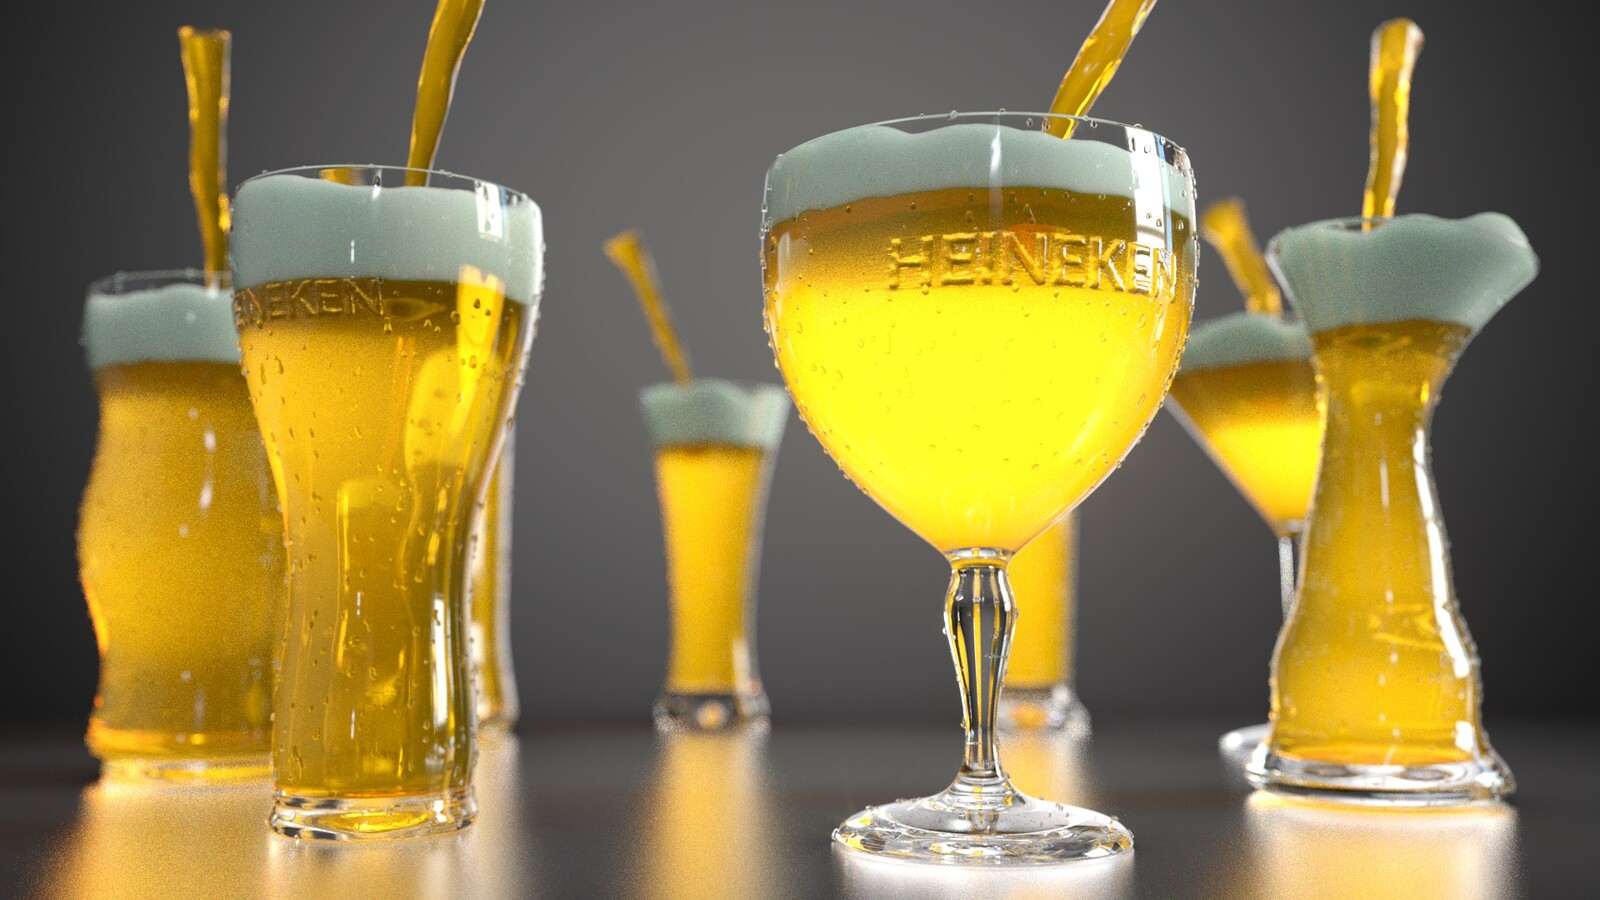 Houdini Procedural Beer Pouring System | 2019